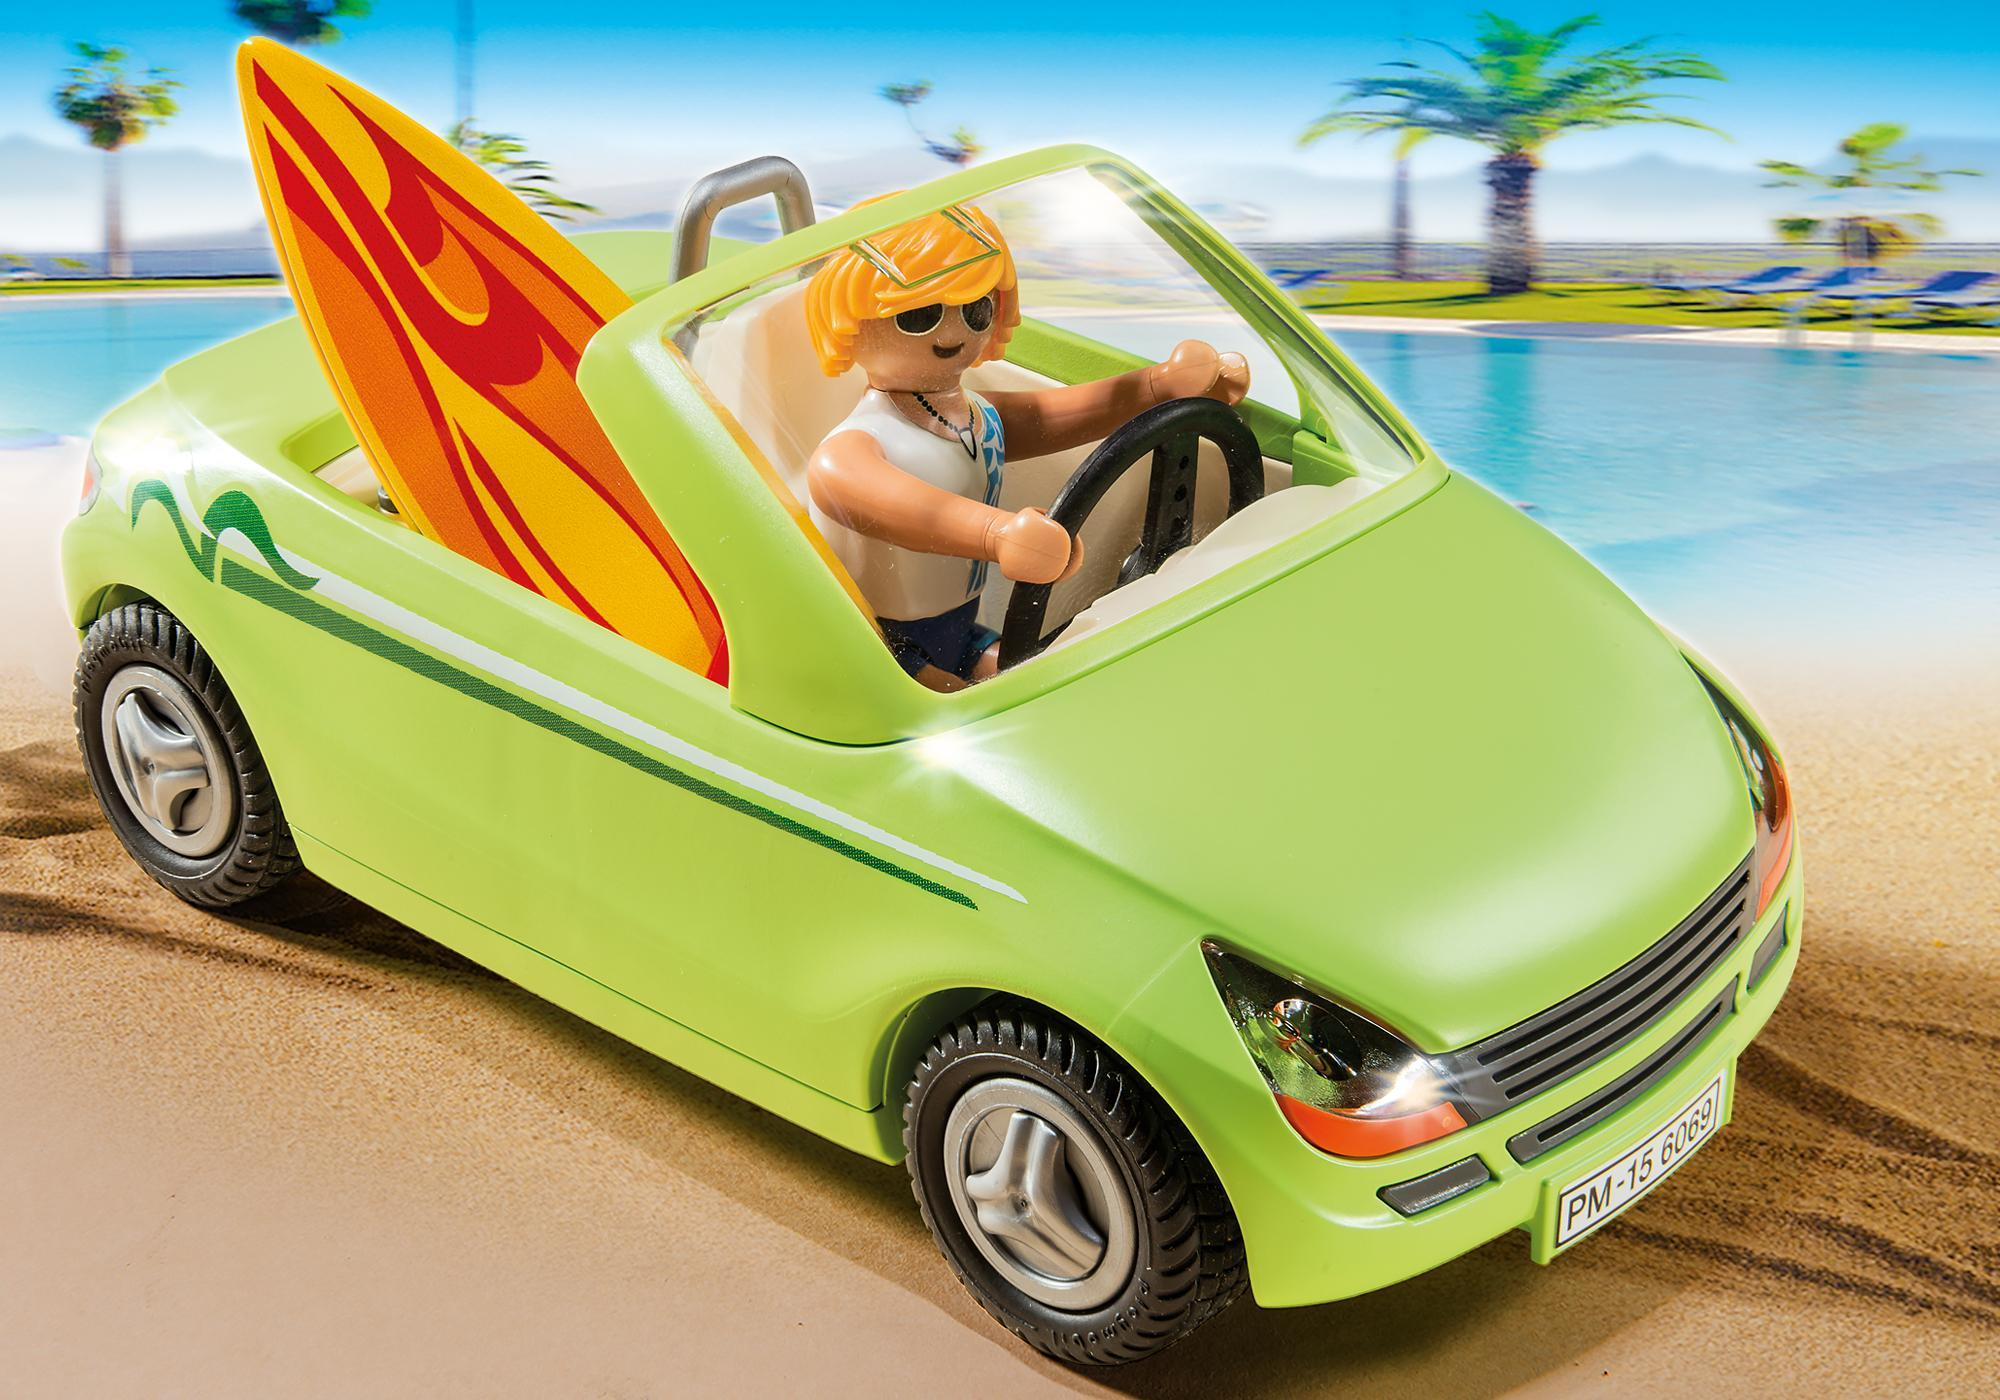 http://media.playmobil.com/i/playmobil/6069_product_extra1